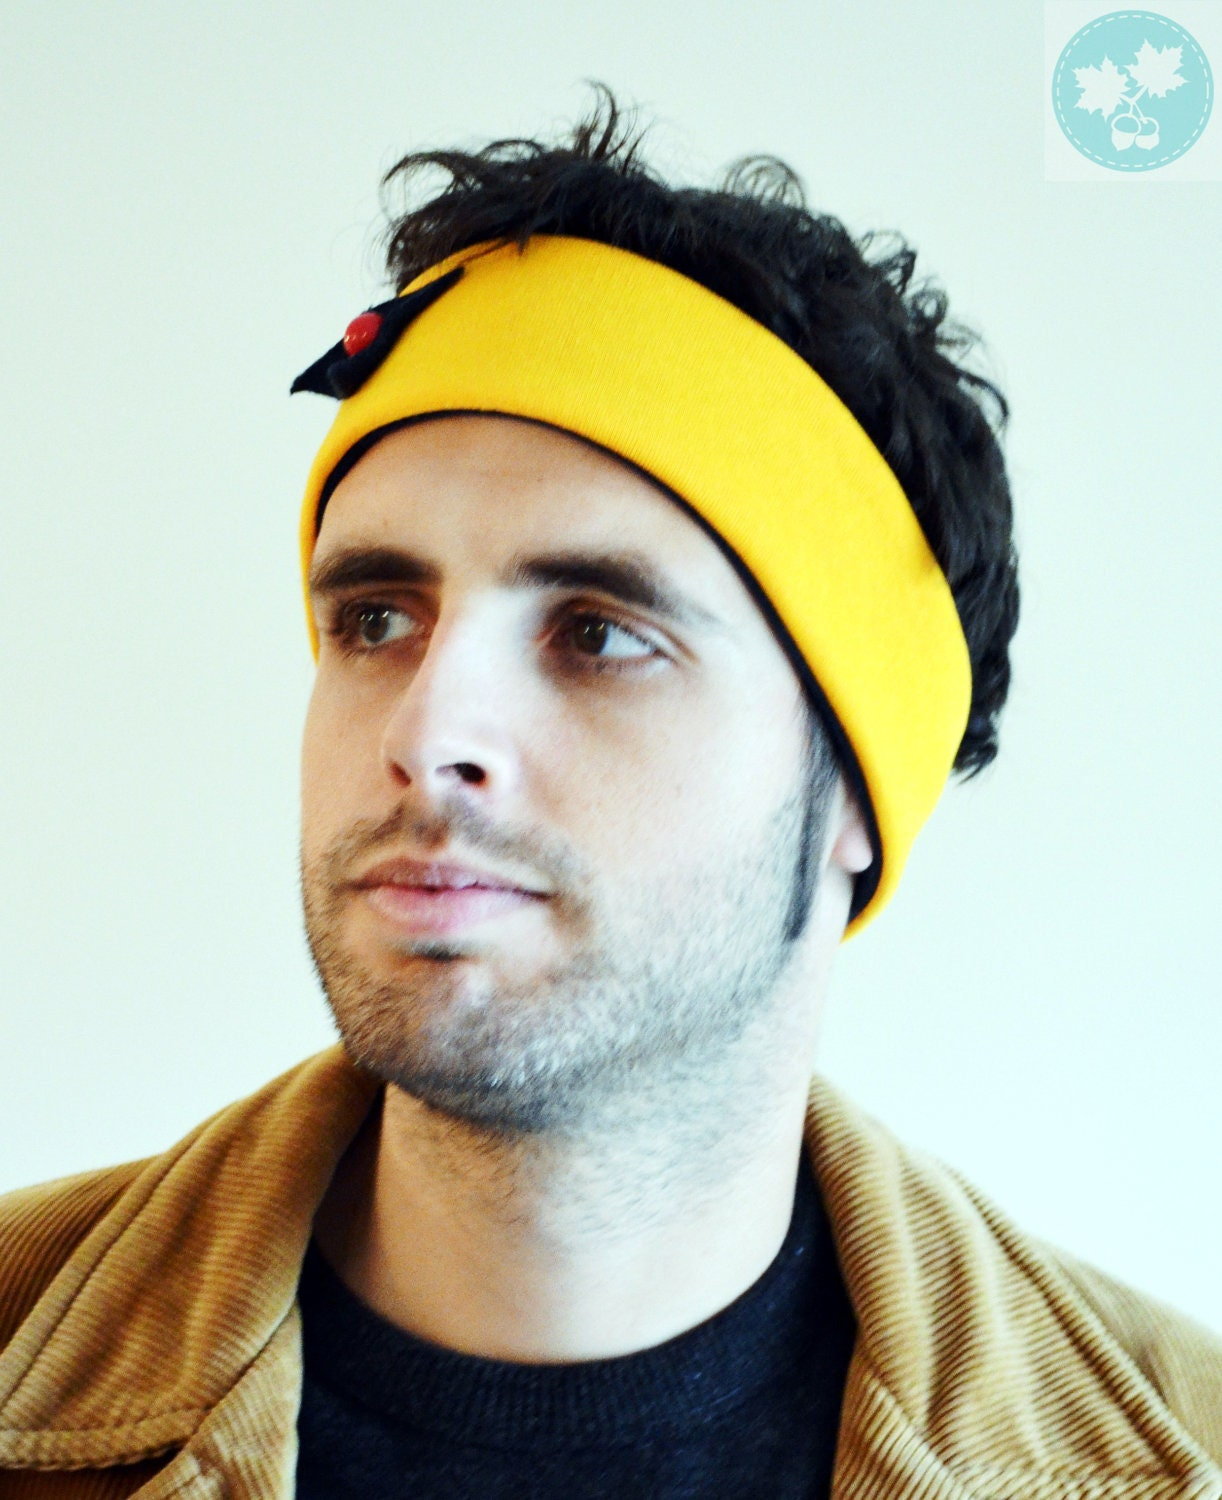 Mens Headband Style Guide The Feel Good Daily by KOOSHOO 82